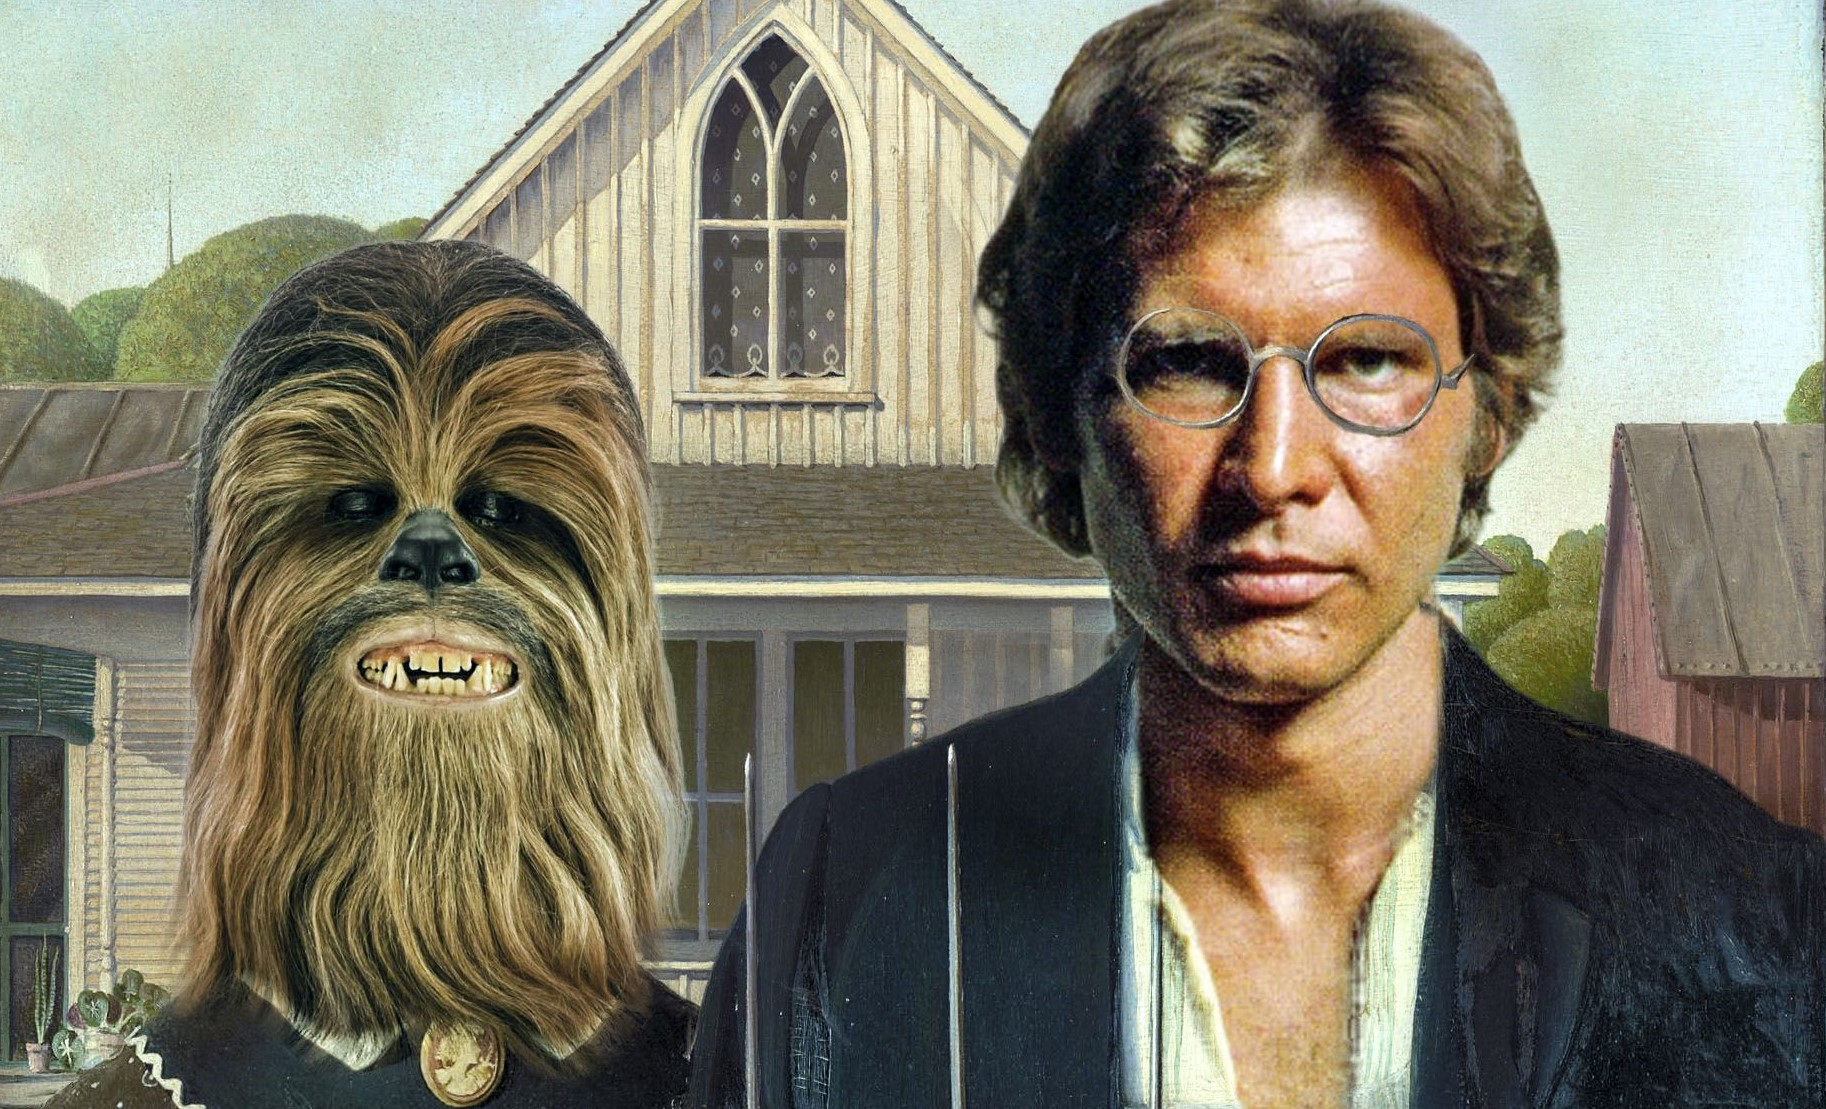 Indiana Jones Harrison Ford S Alternative Pastime Weed